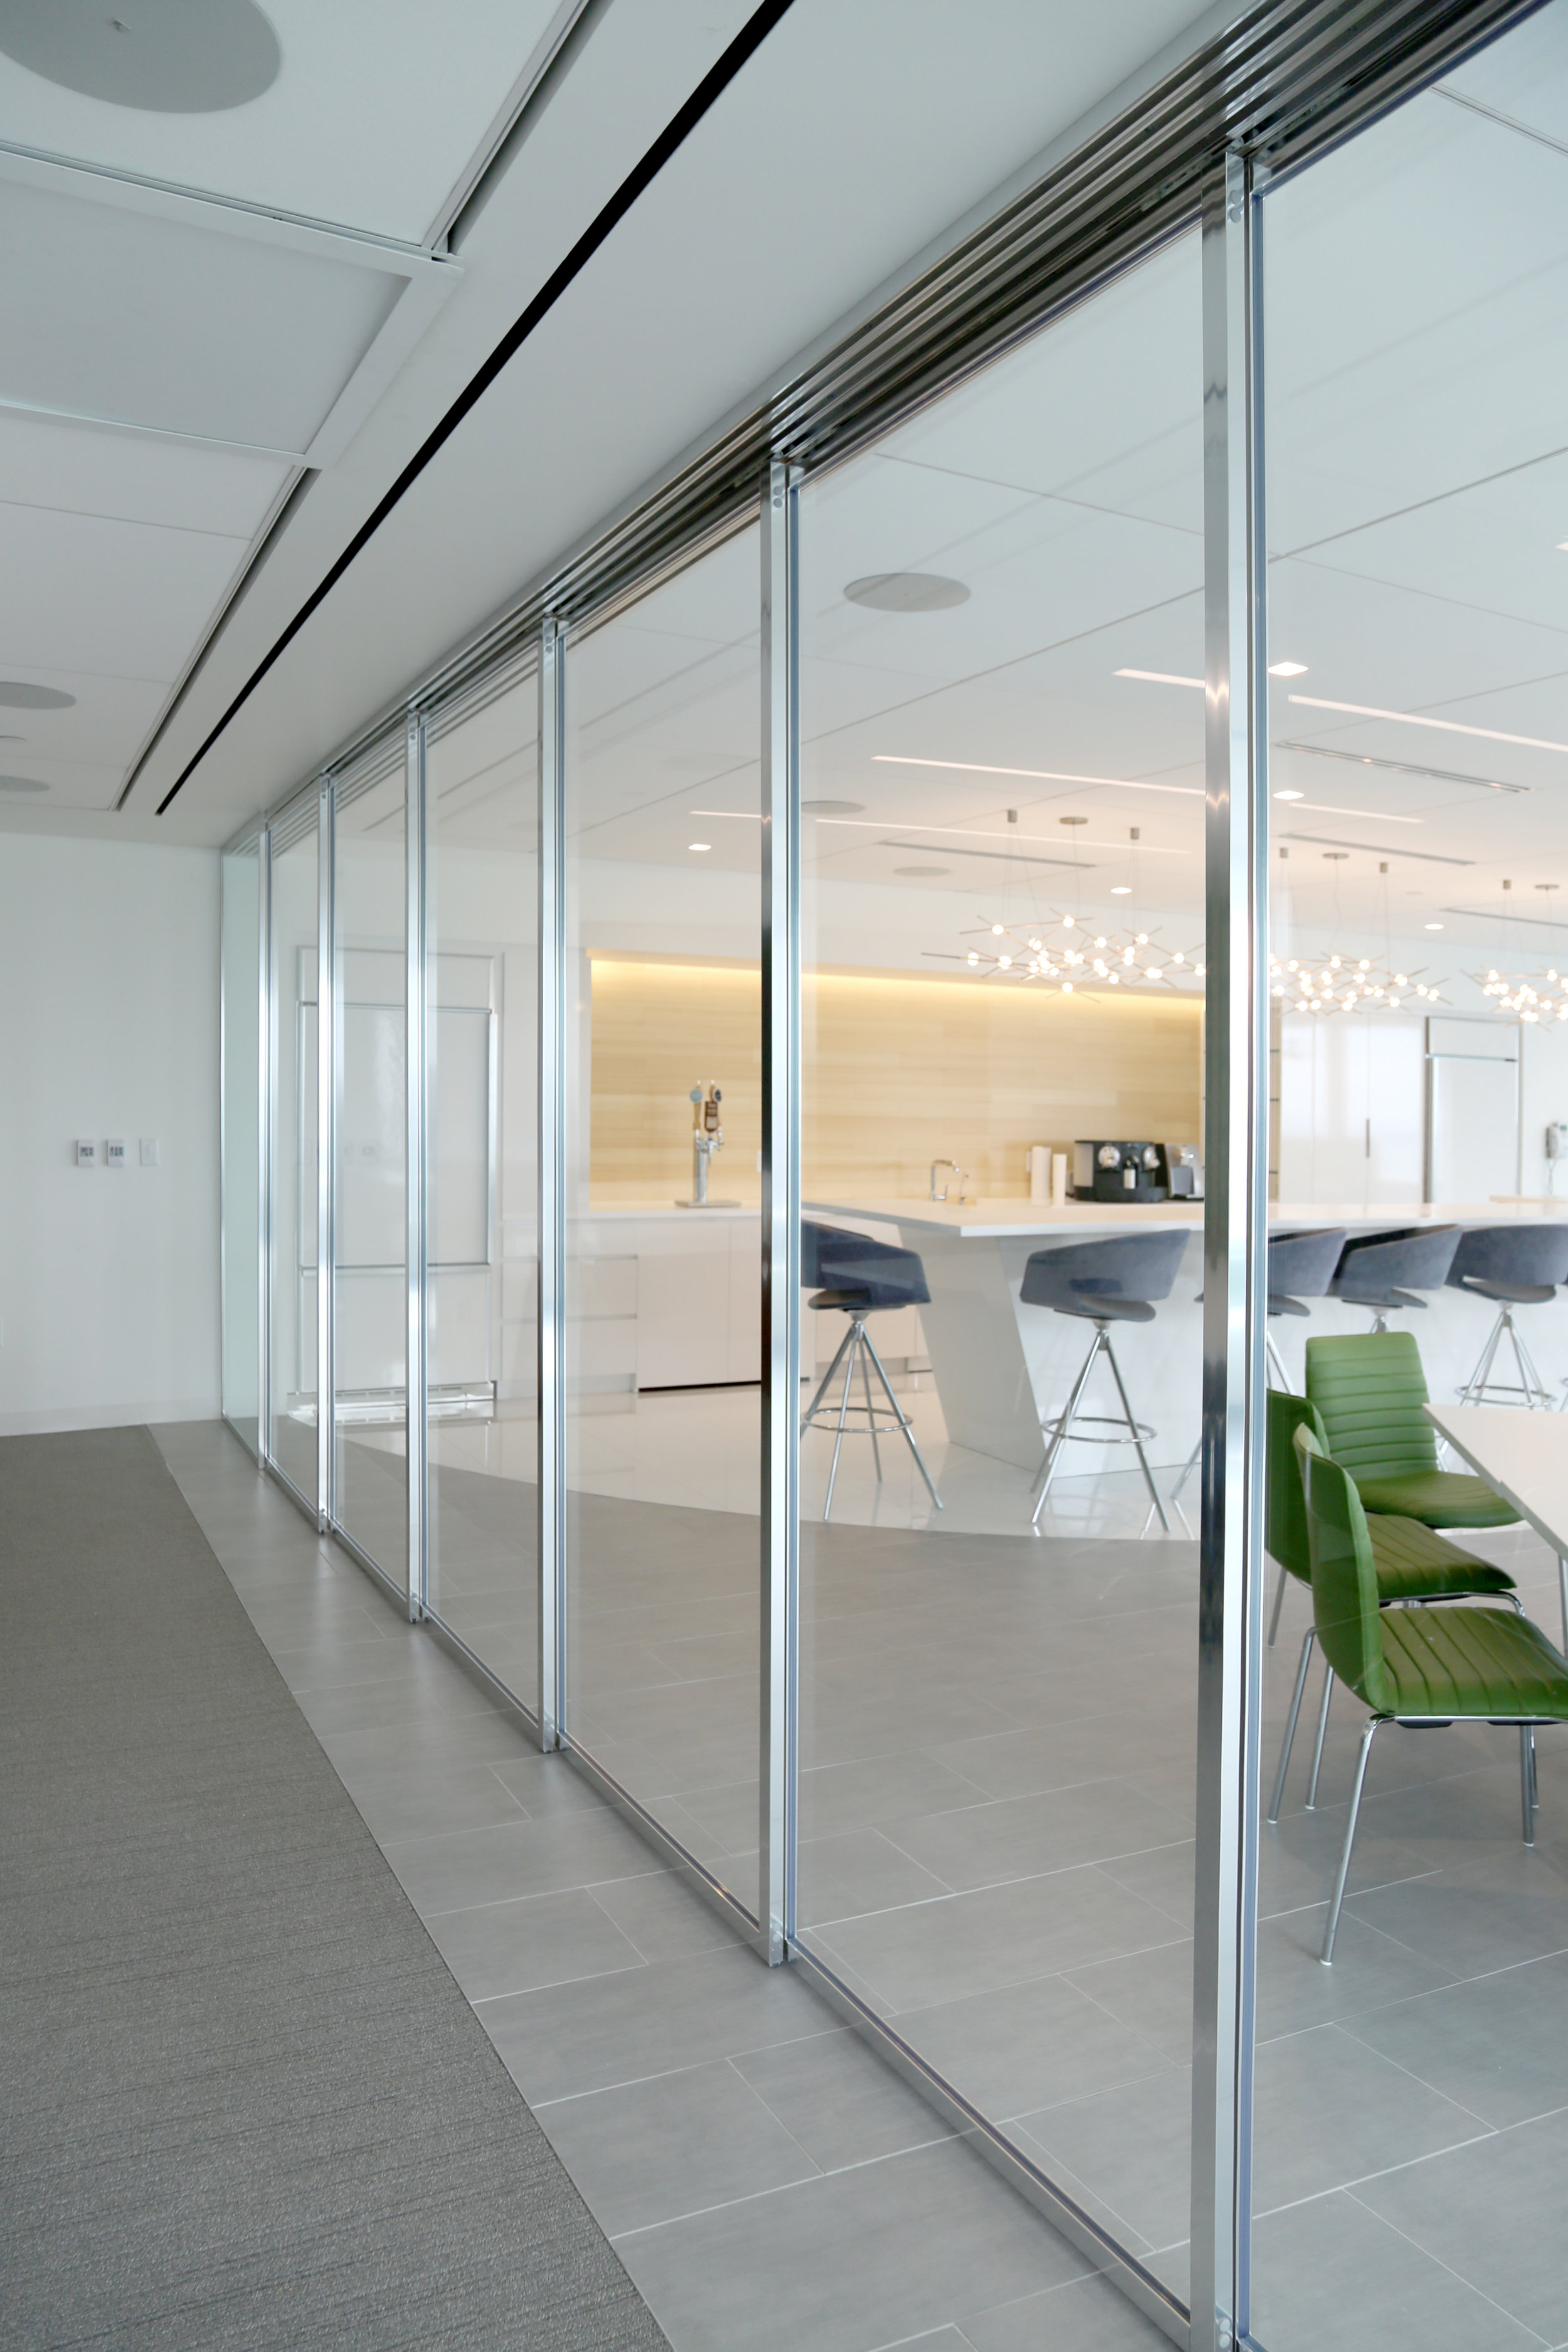 Sliding Glass Wall System with Aluminum-Framed Panels - Spaceworks AI.jpg